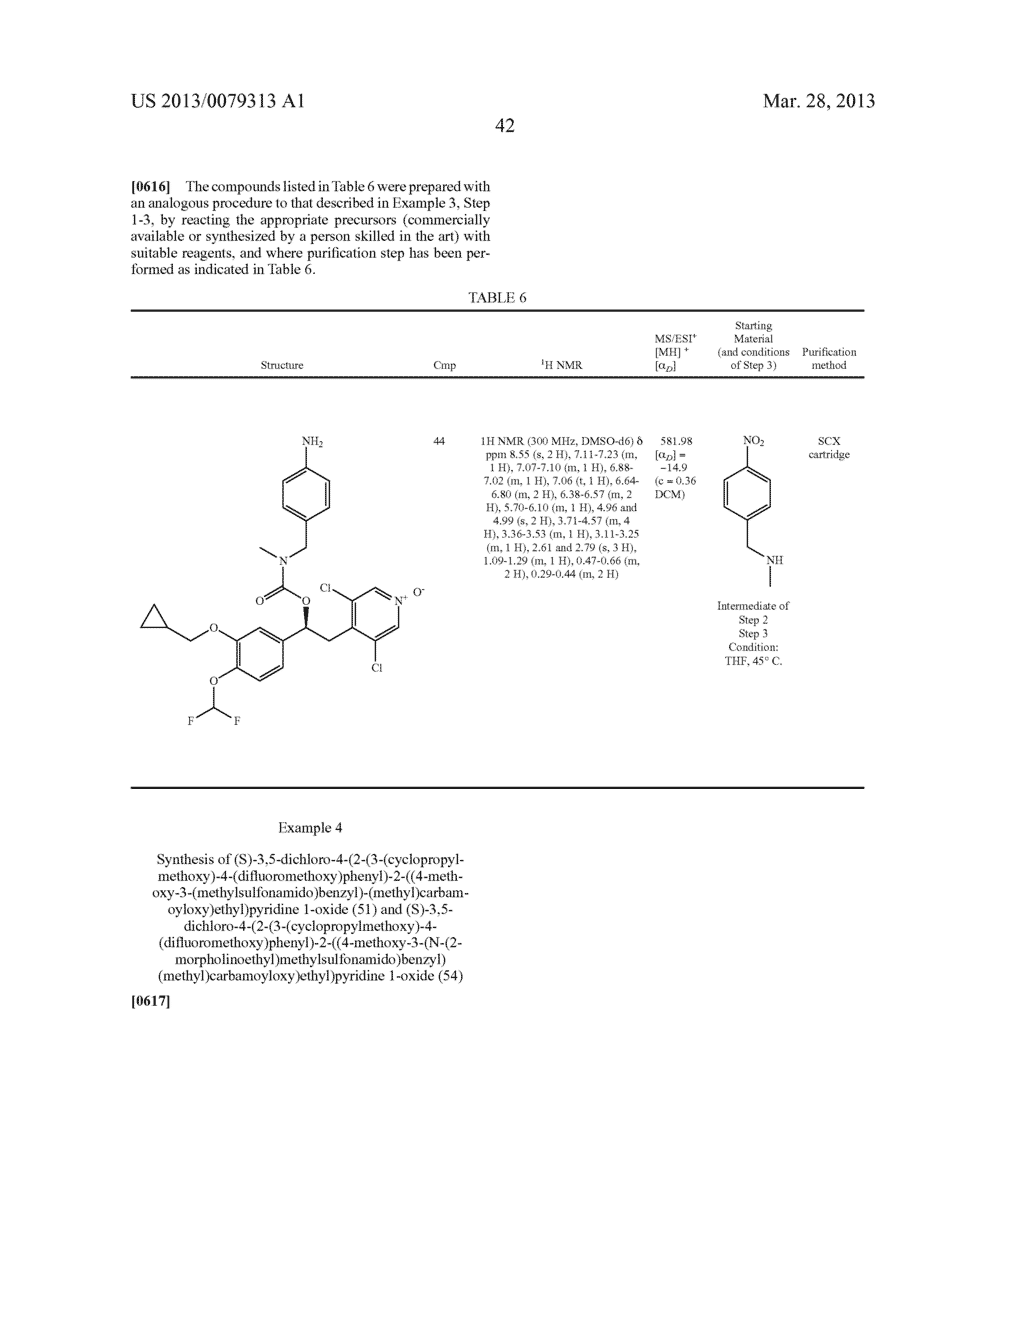 DERIVATIVES OF 1-PHENYL-2-PYRIDINYL ALKYL ALCOHOLS AS PHOSPHODIESTERASE     INHIBITORS - diagram, schematic, and image 43